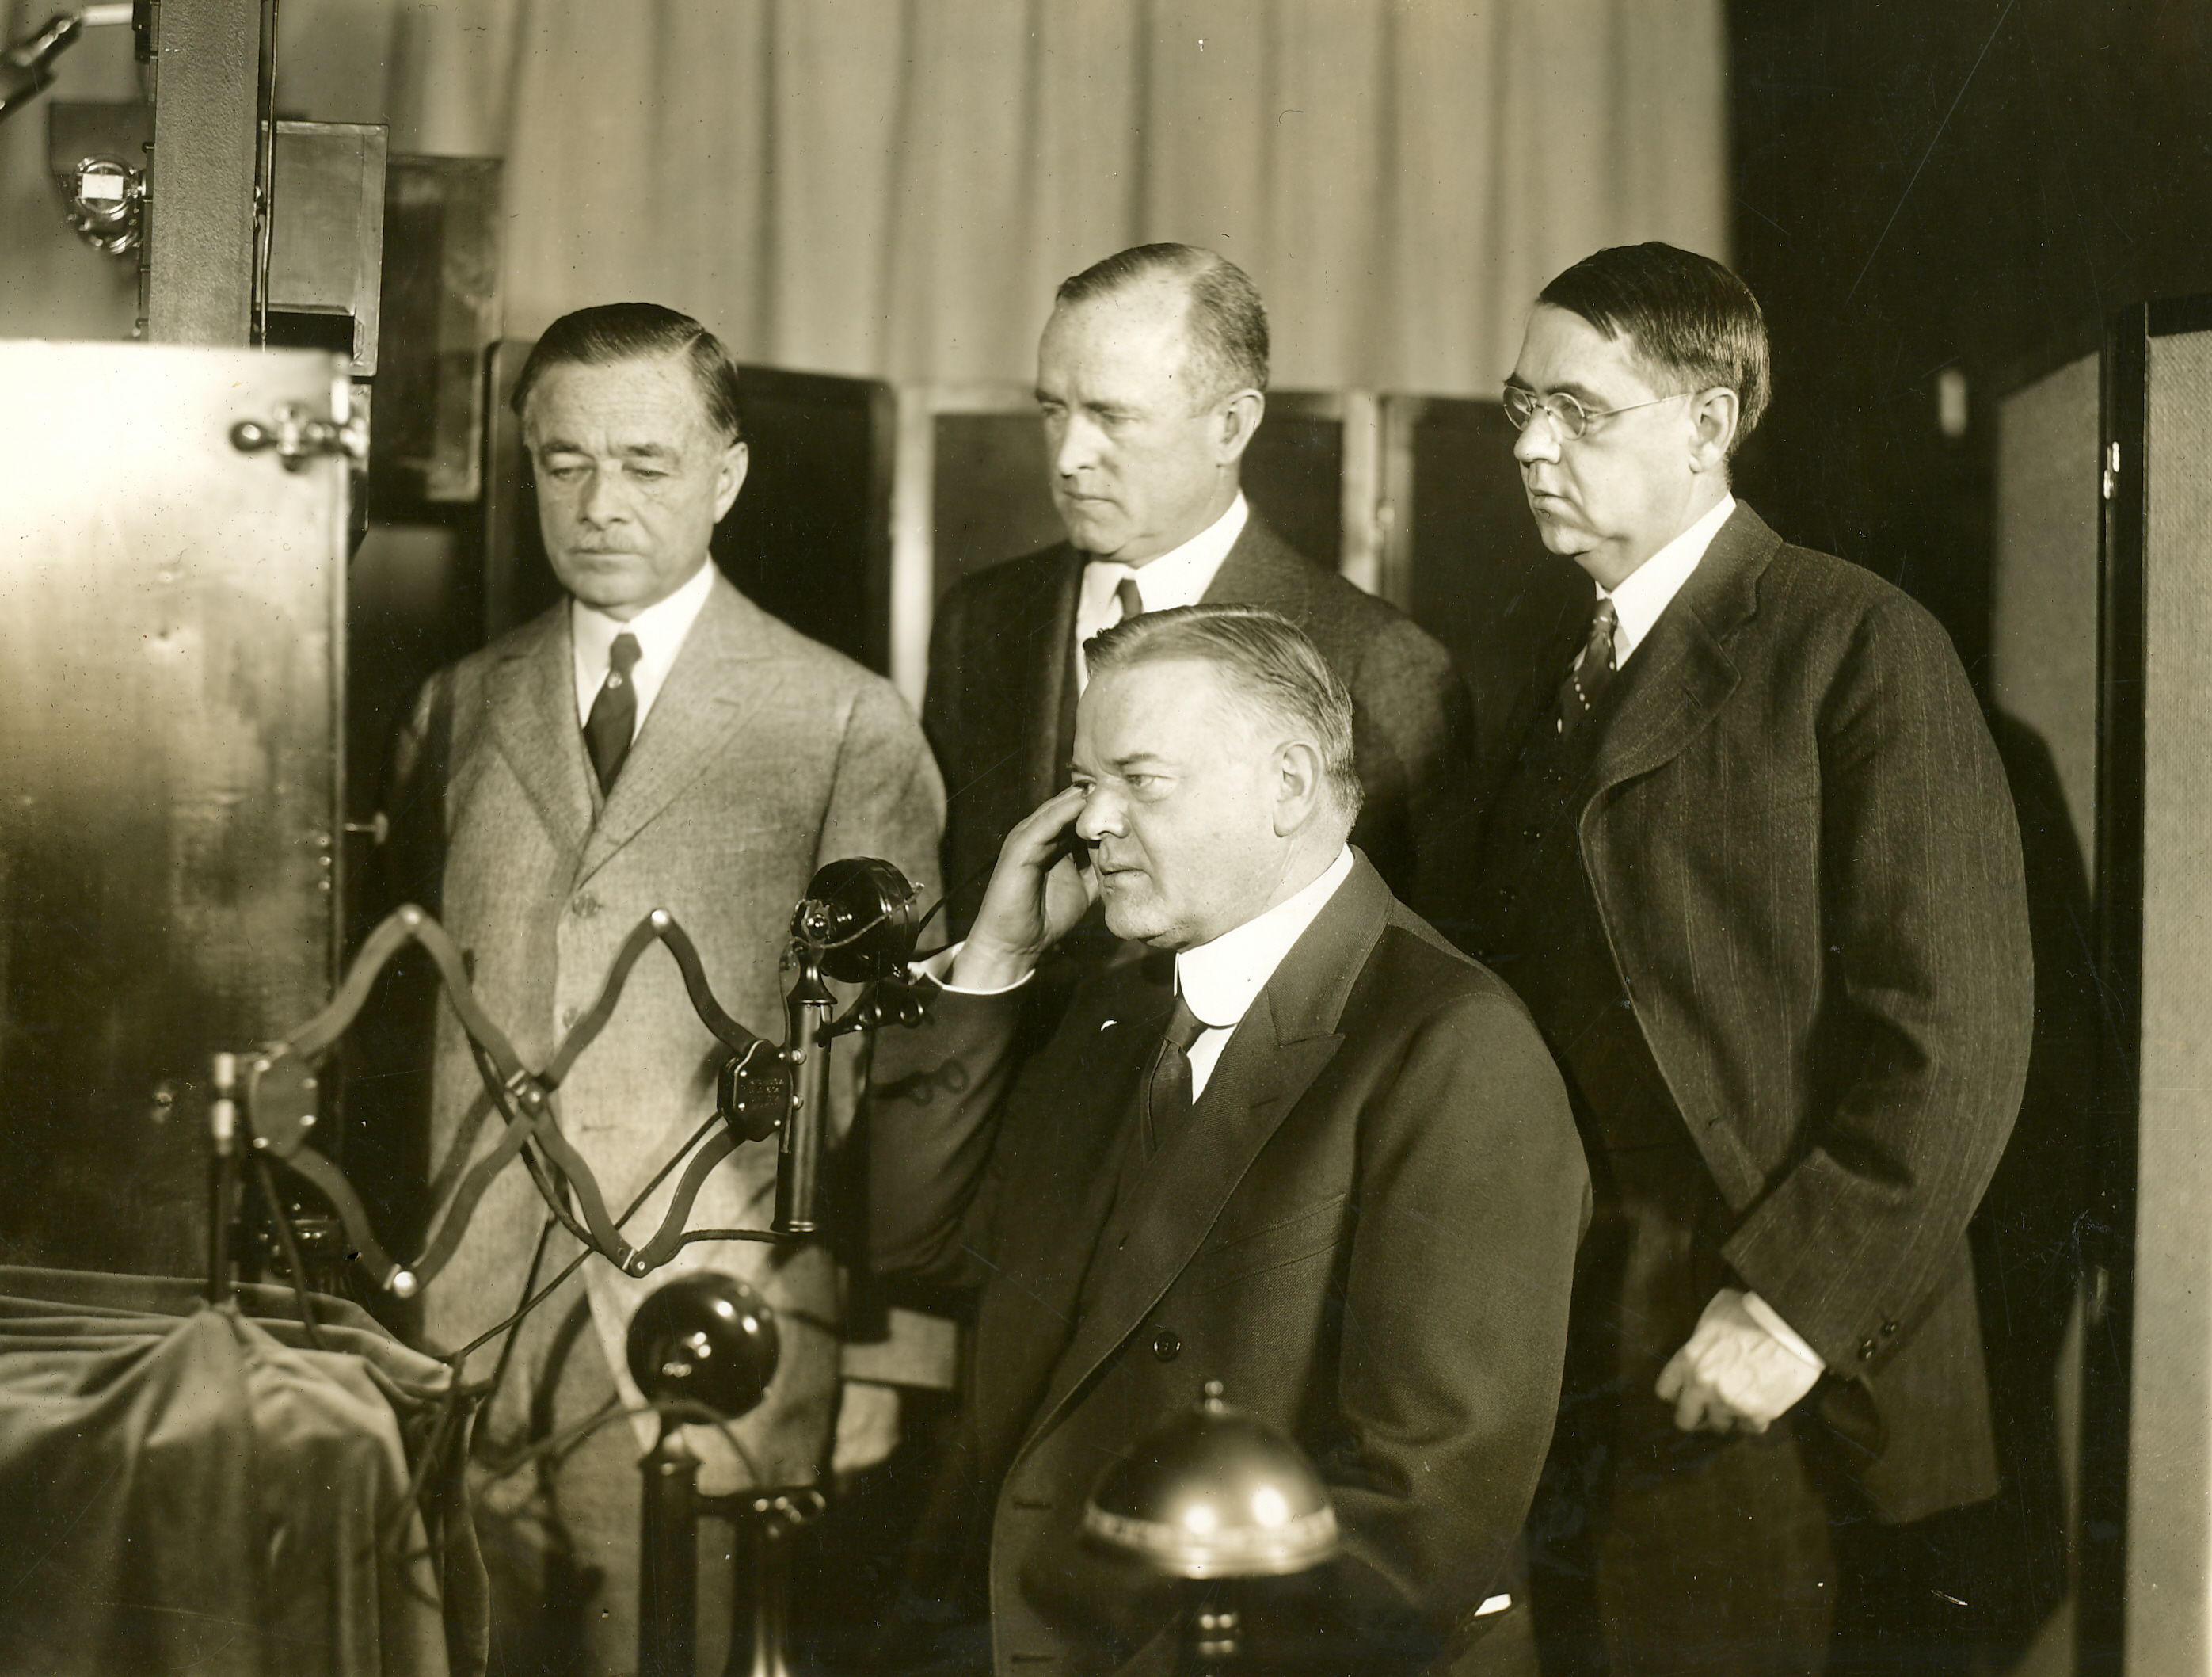 The first Public one-way TV Demo call, with Herbert Hoover in Washington, D.C.